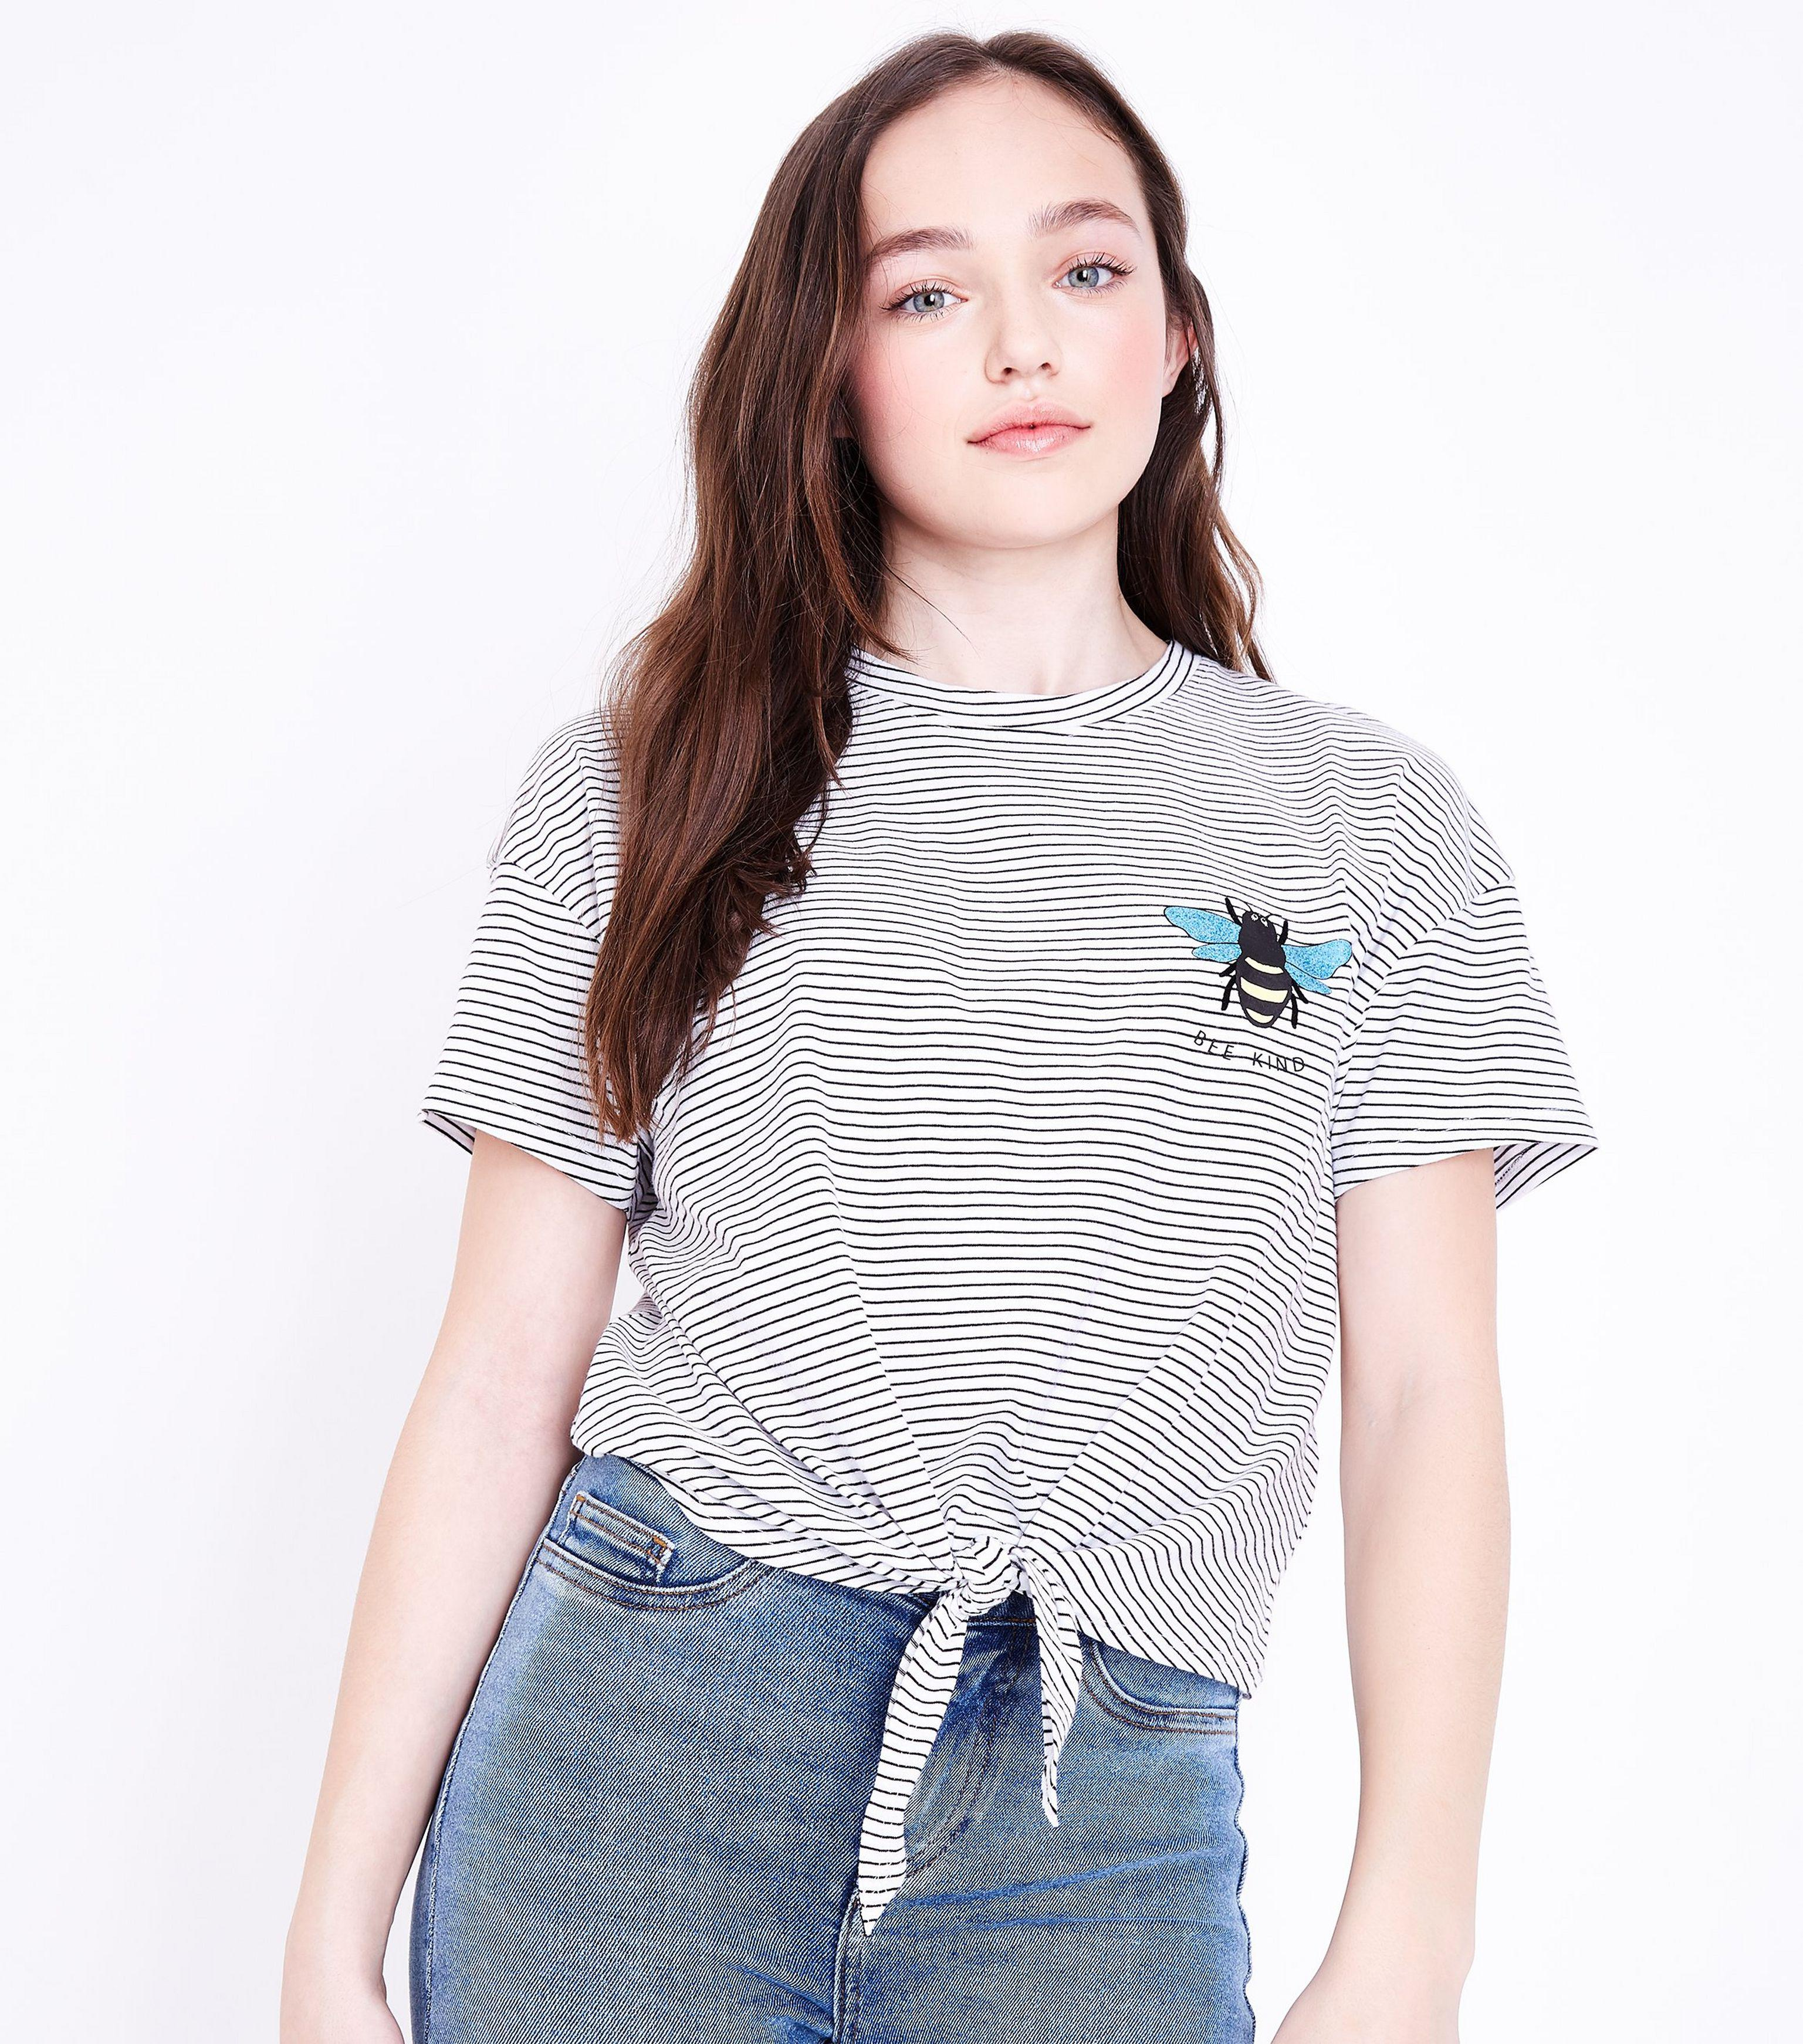 0d257ebae4 New Look Teens White Stripe Bee Kind Embroidered Tie Front T-shirt ...